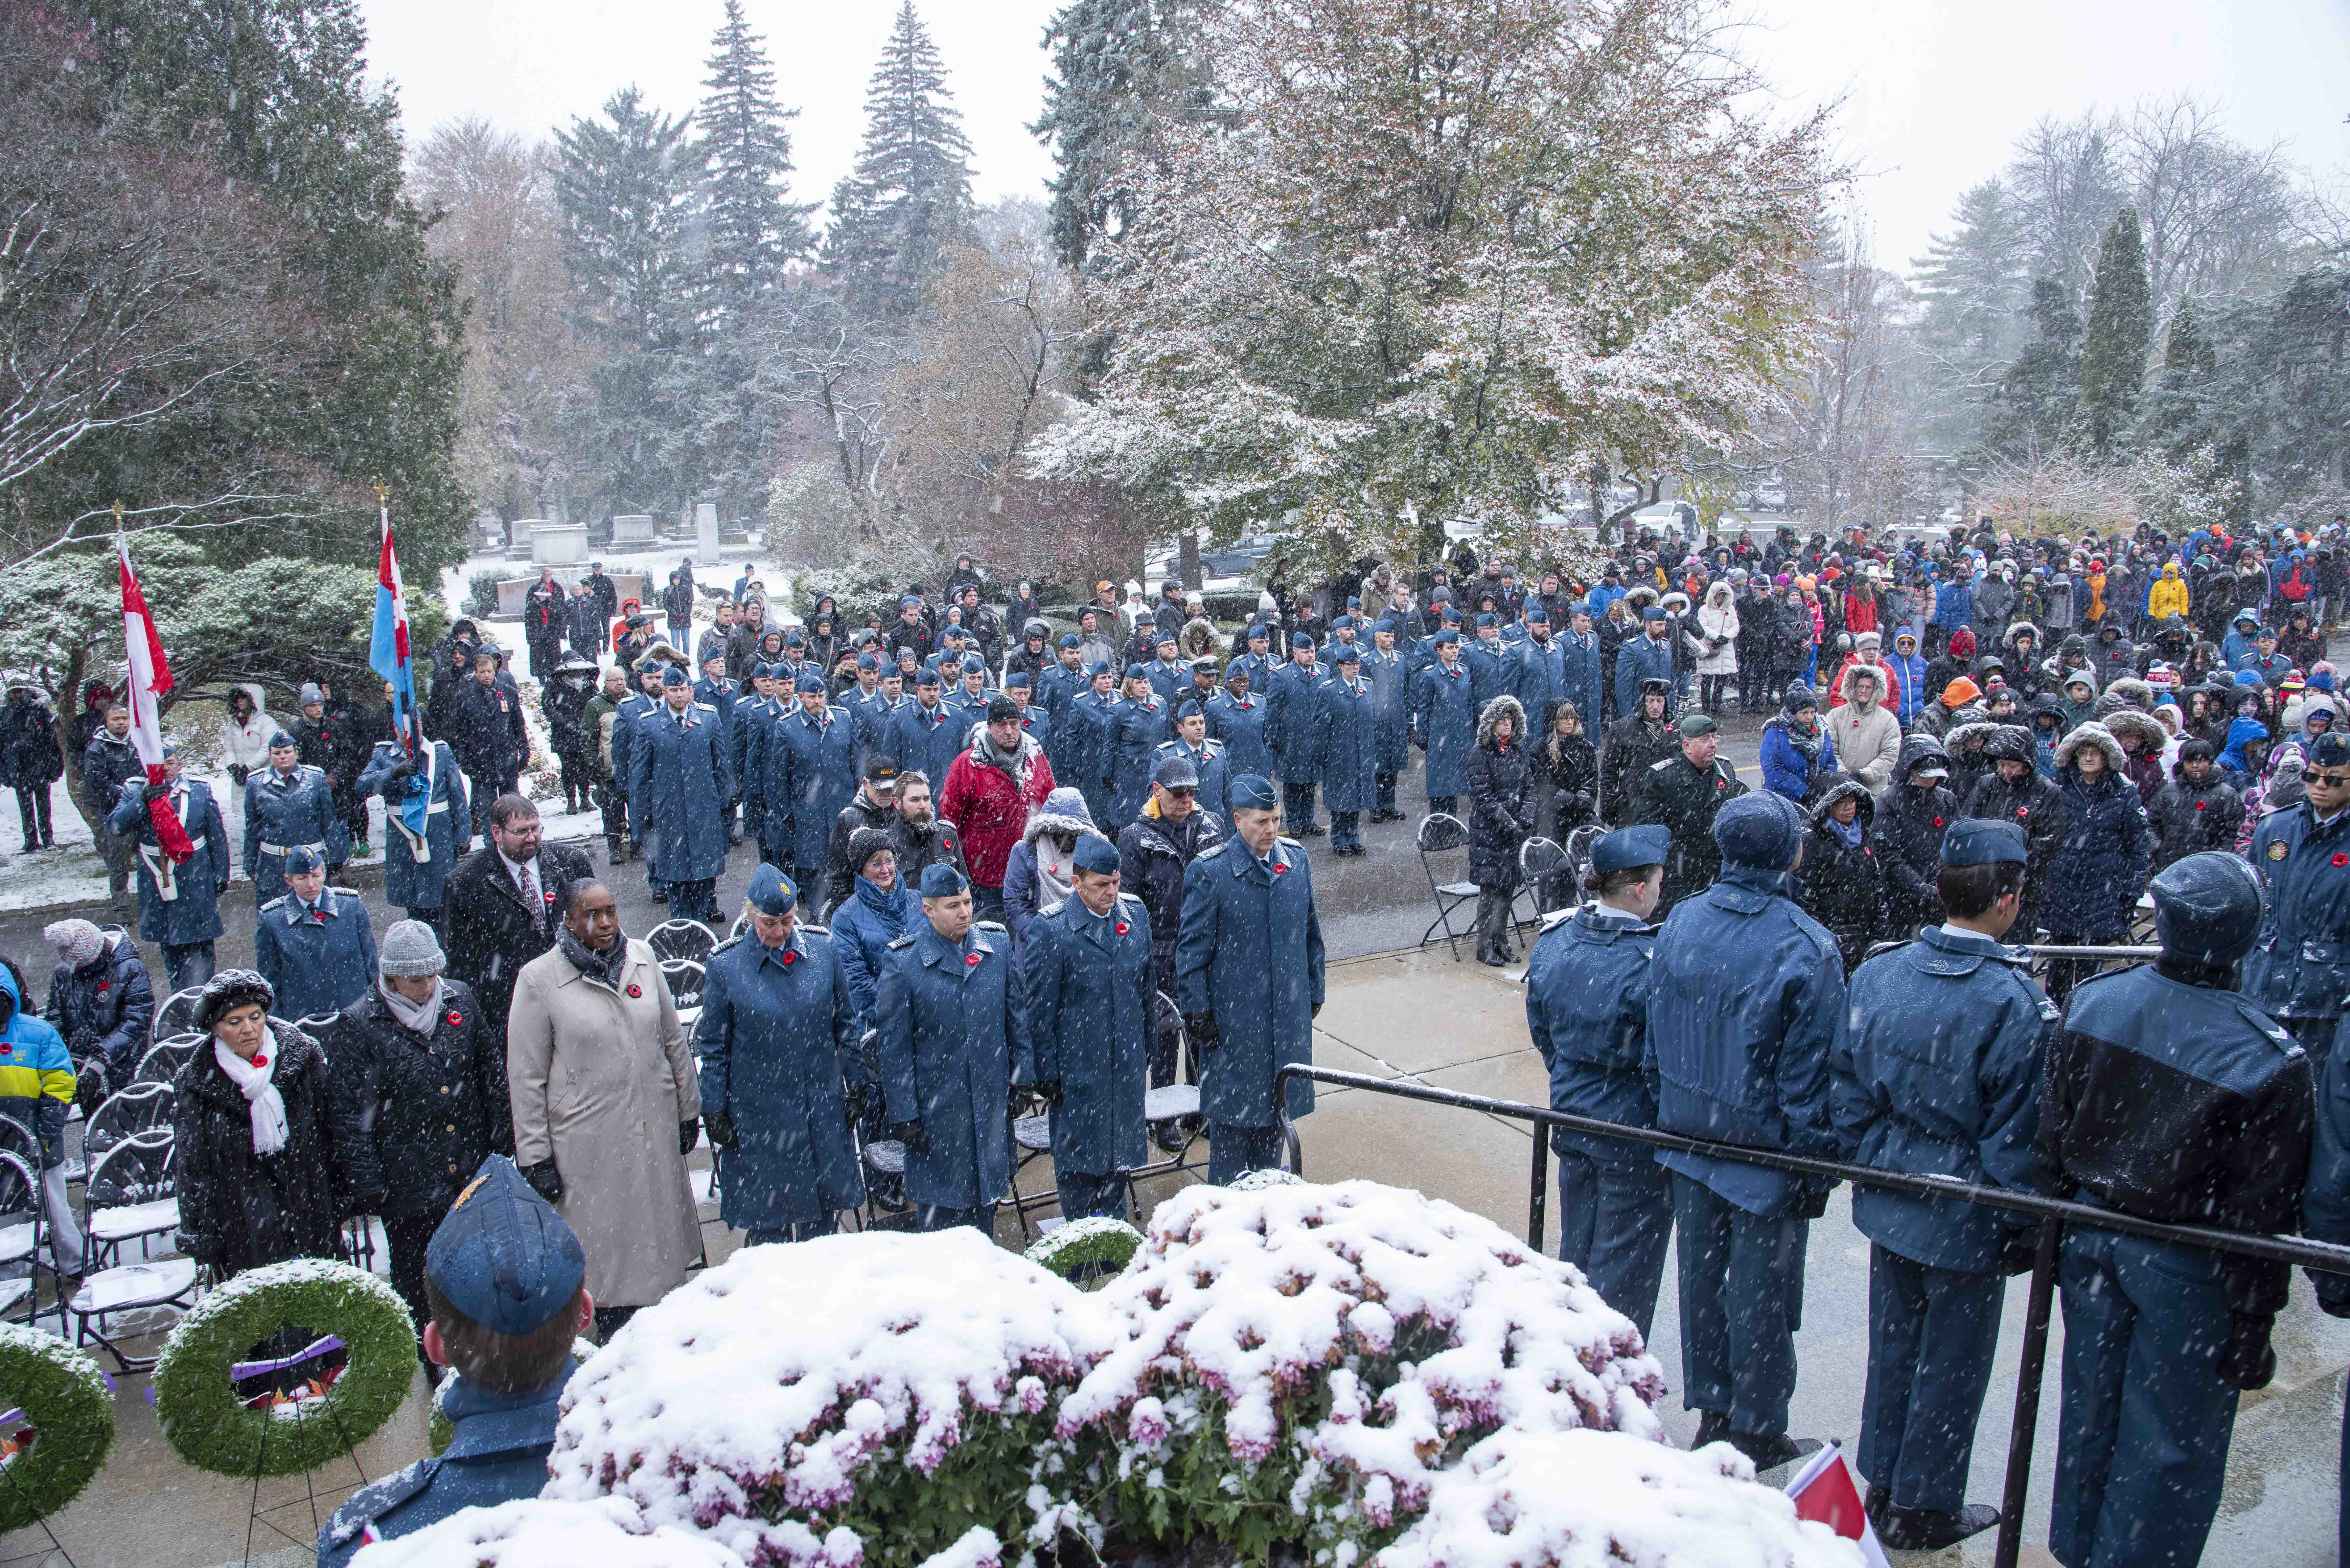 A large crowd of military personnel, veterans, youth and other members of the public stands in the falling snow during the 2019 Remembrance Day ceremony held at the mausoleum where Wing Commander William Barker, VC, is interred in Mount Pleasant Cemetery, Toronto. PHOTO: Corporal Lynette Ai Dang, BM10-2019-0359-026